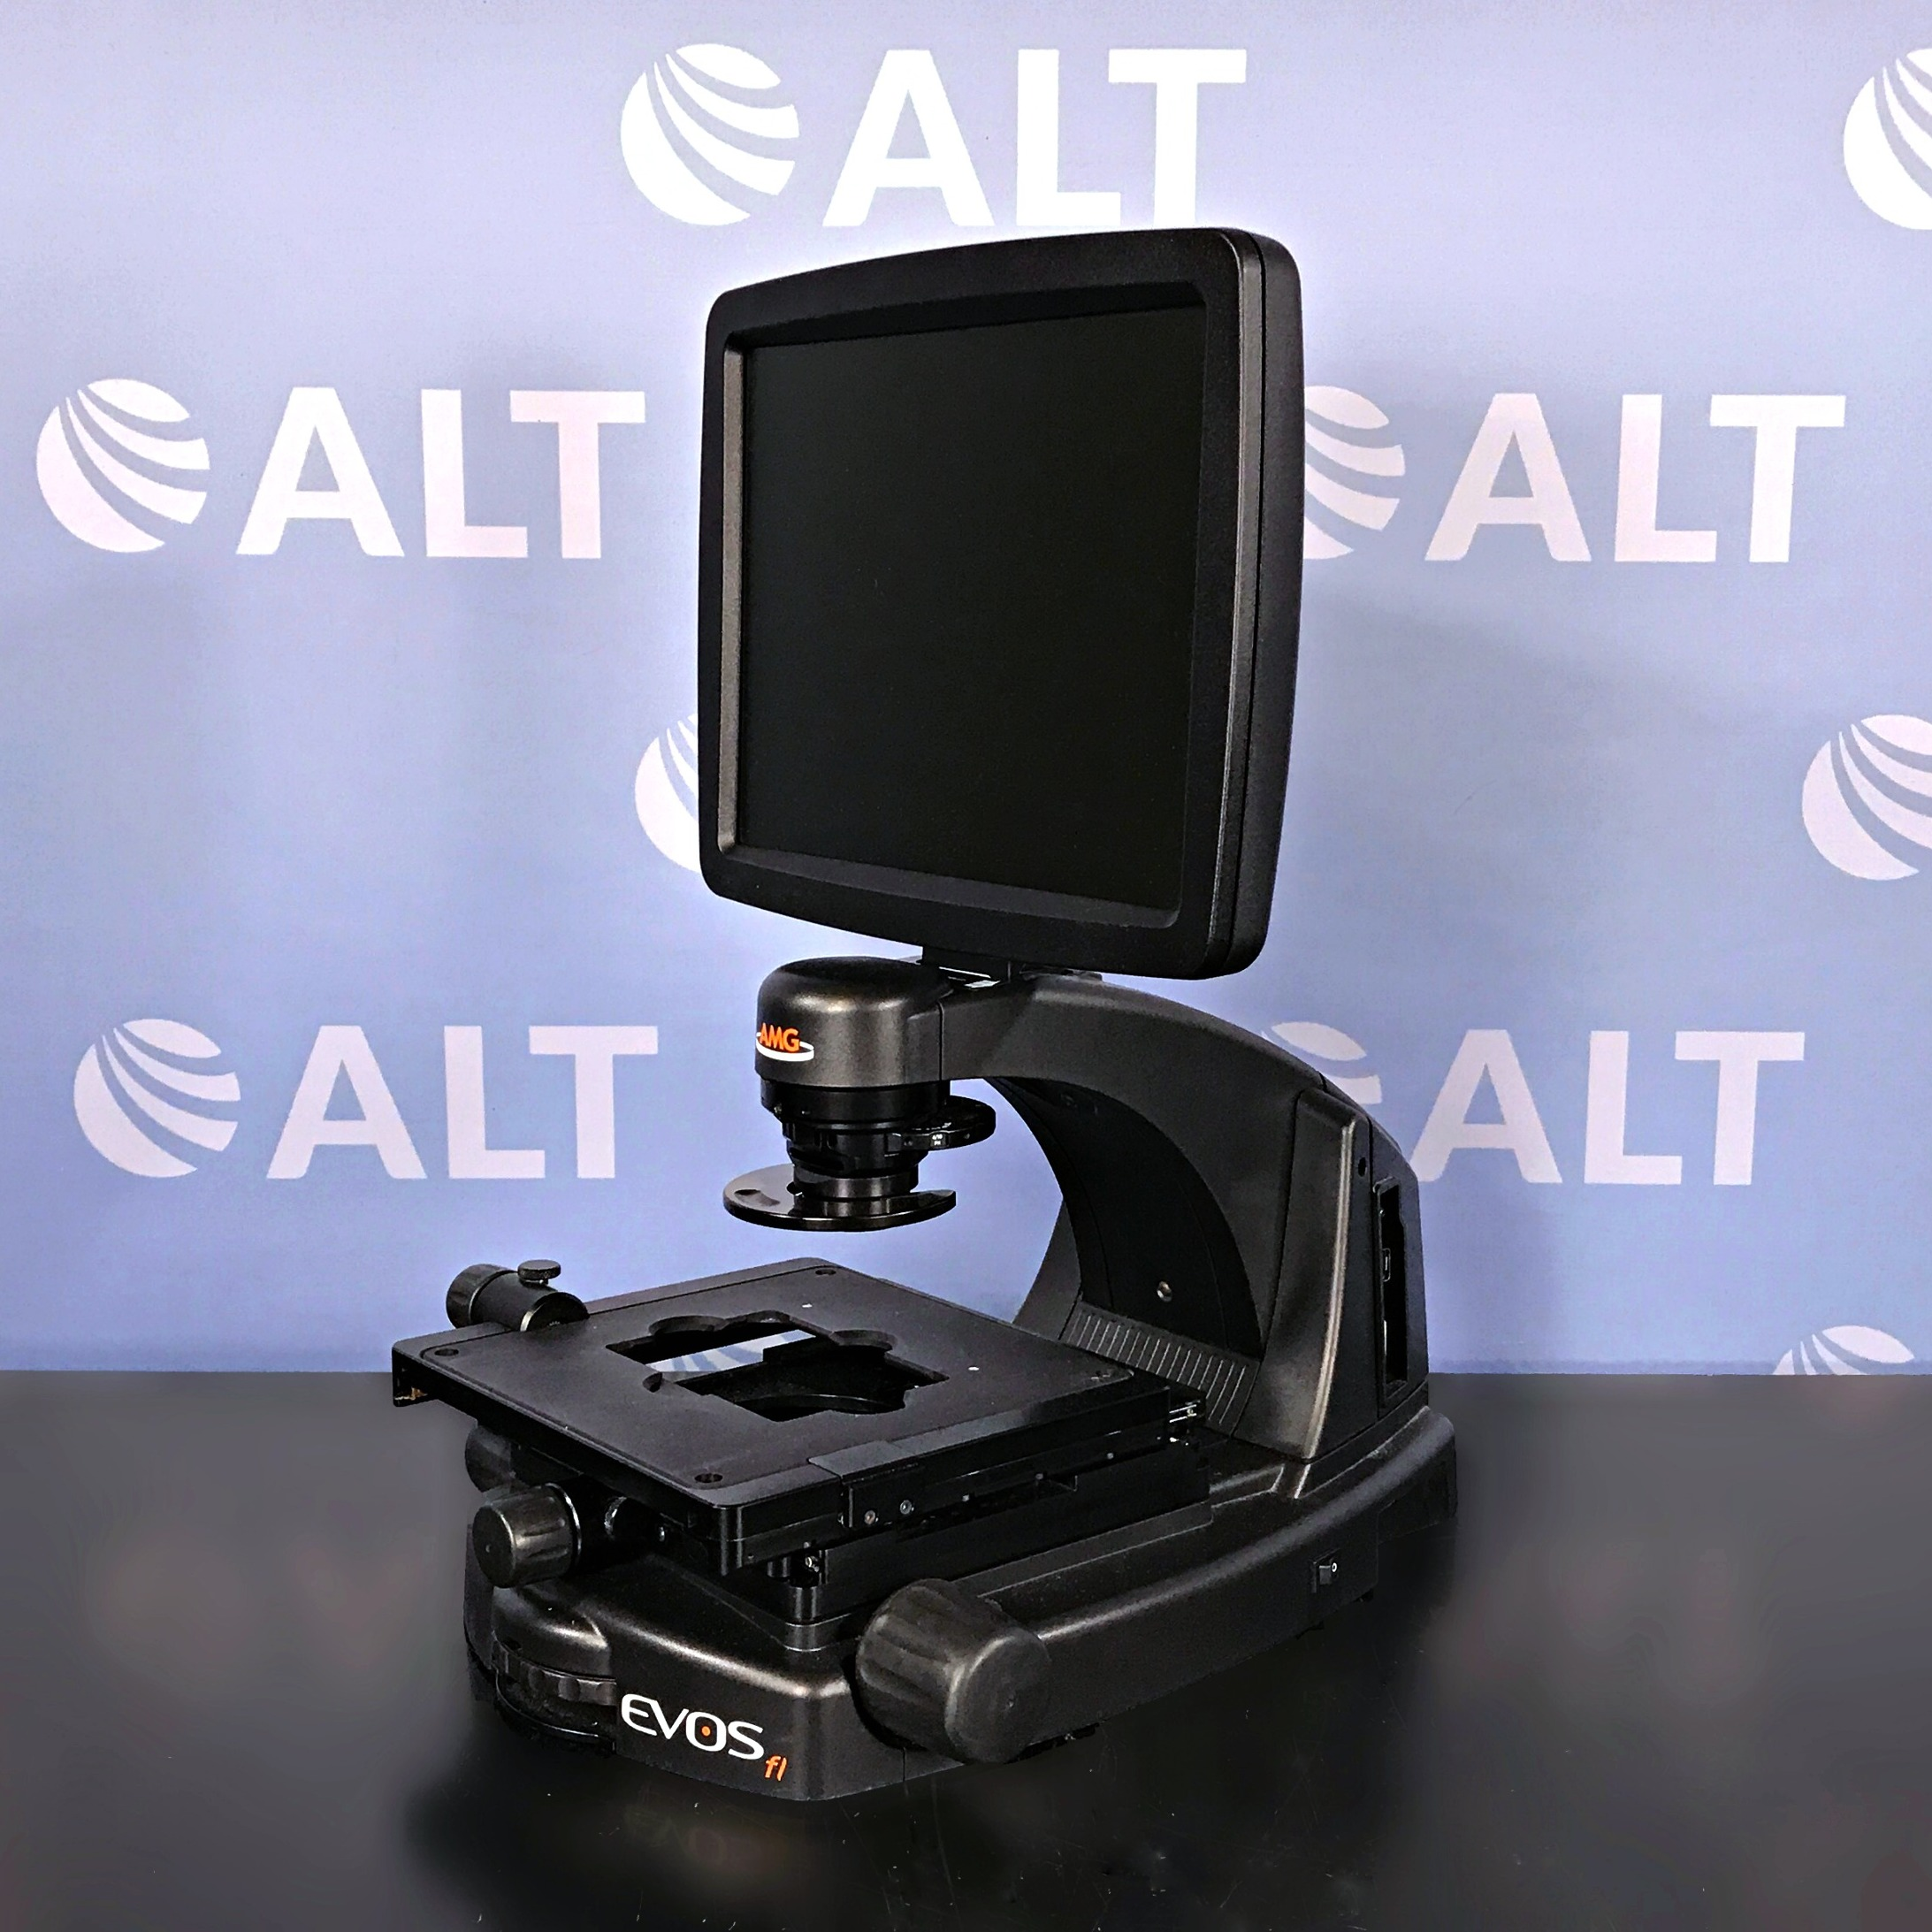 Thermo Scientific EVOS FL Cell Imaging System Image